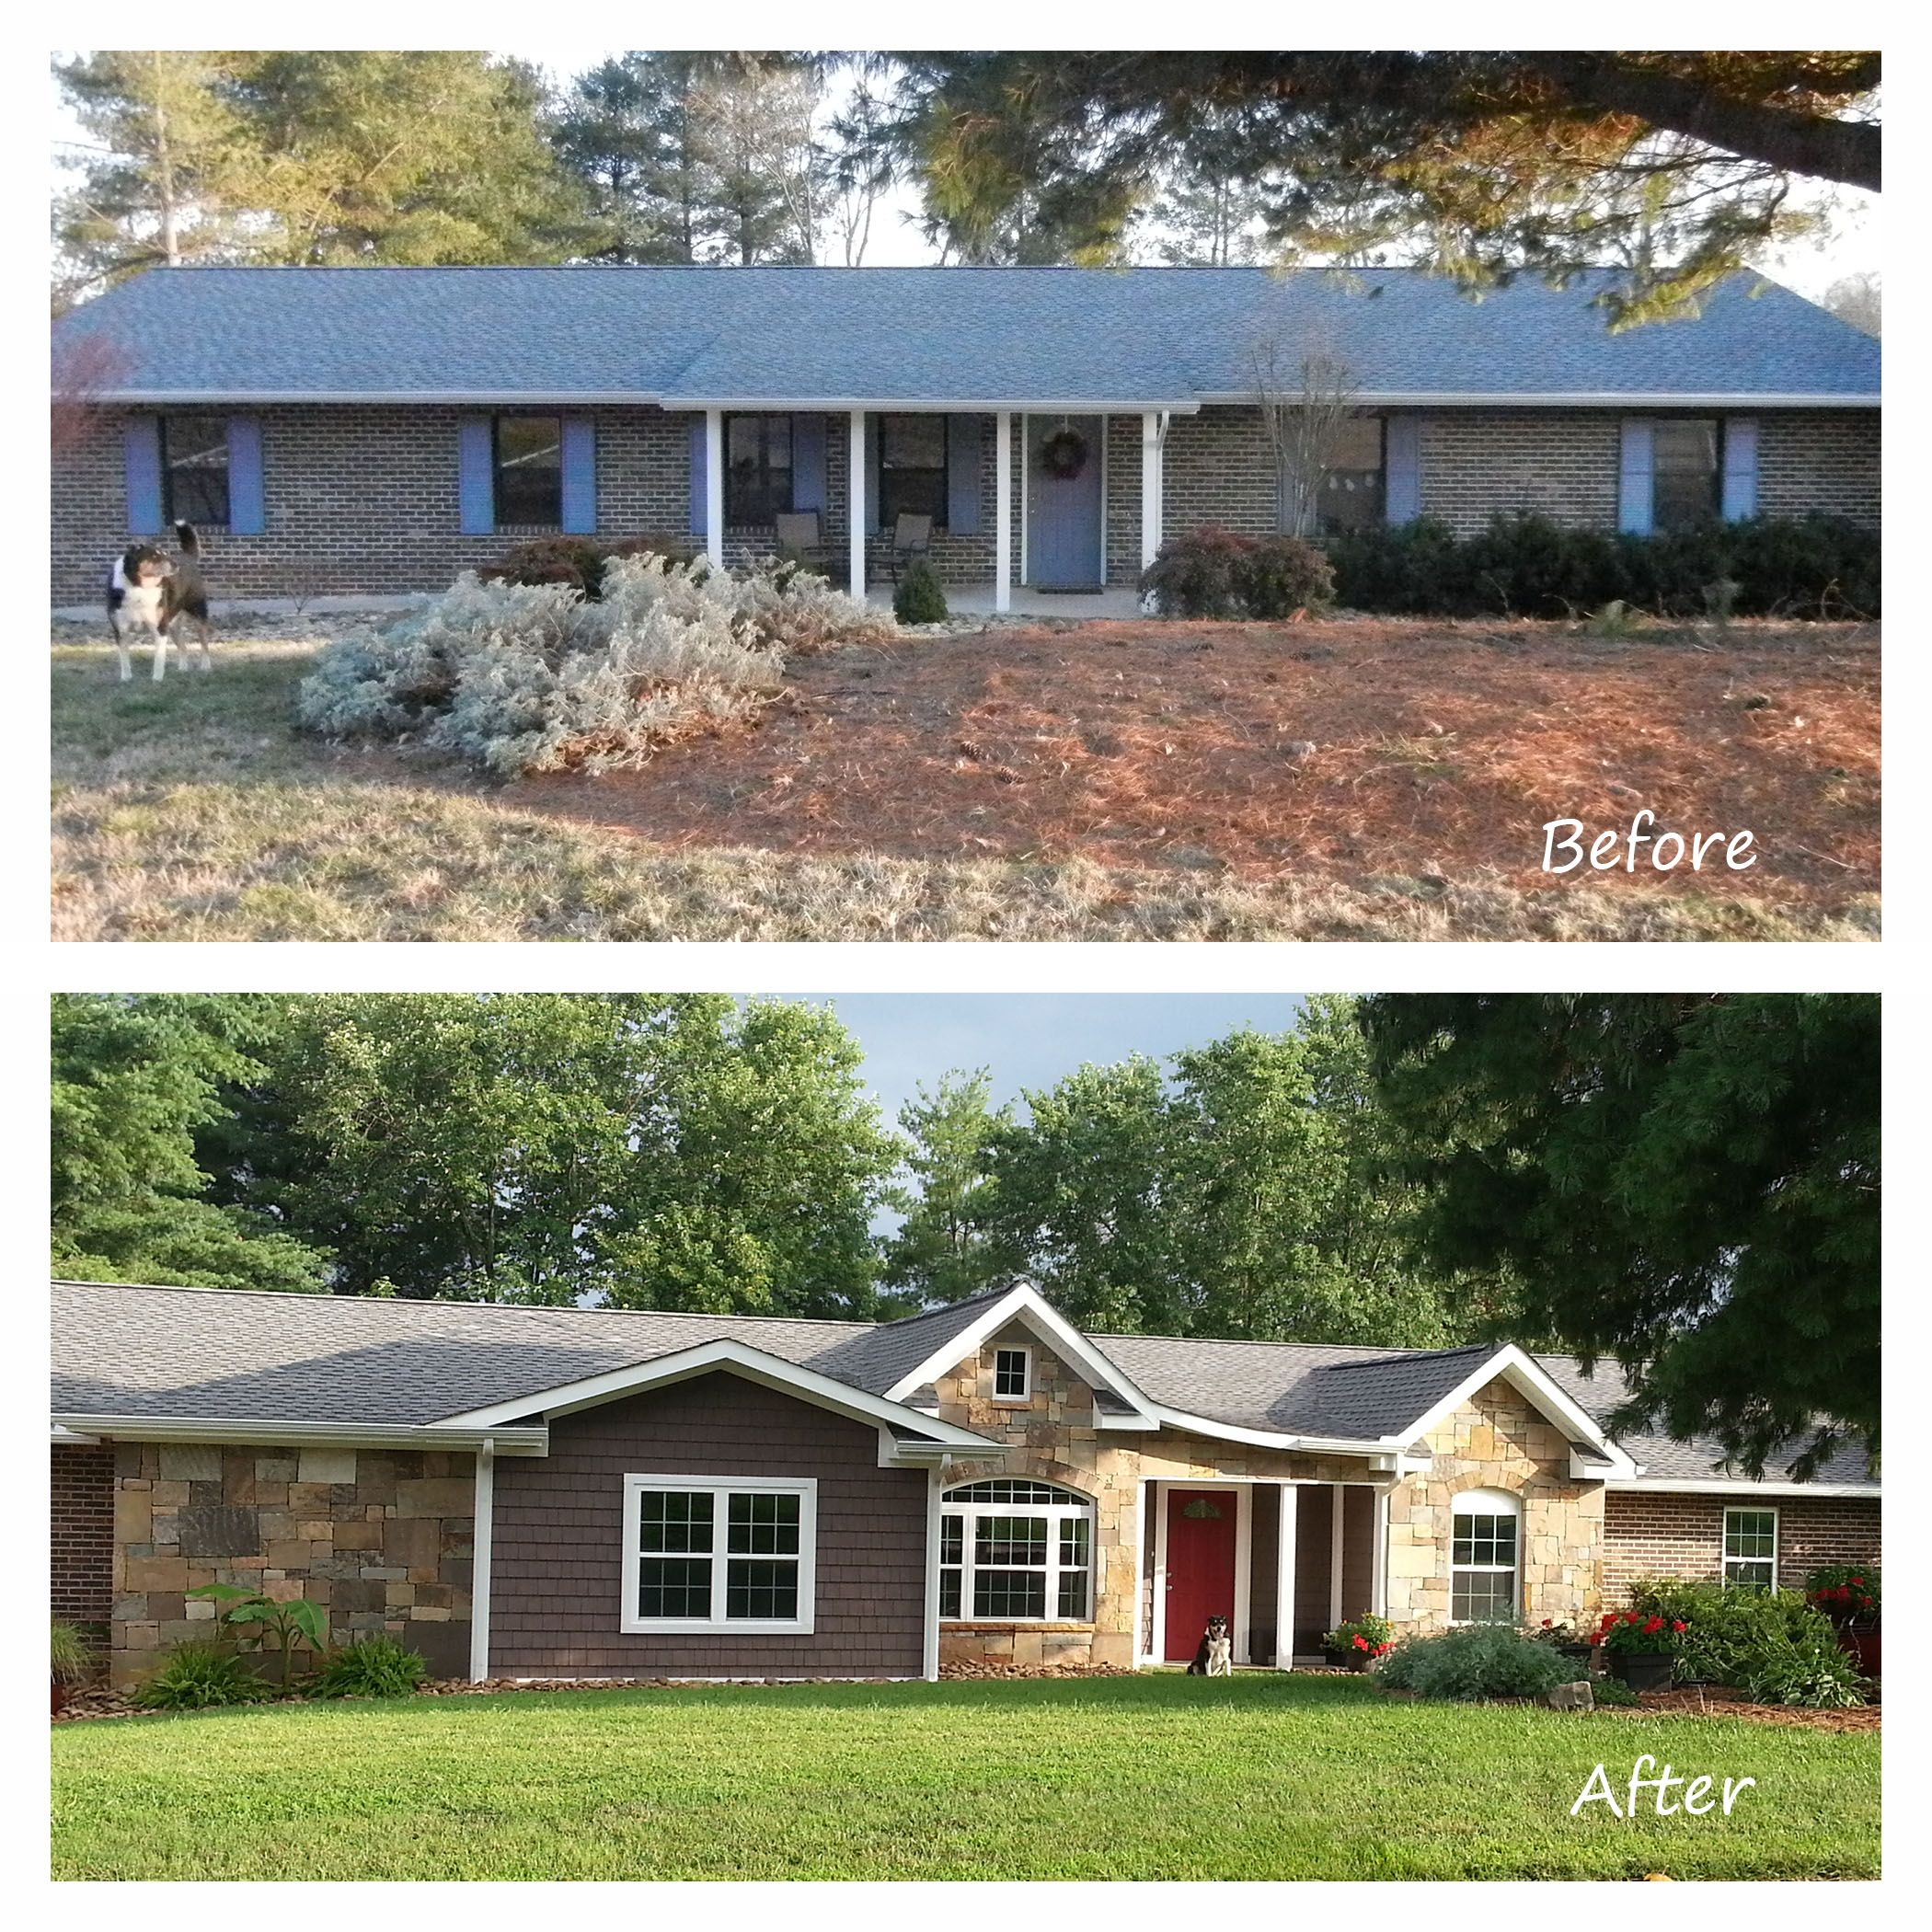 Before and after exterior renovation ranch house remodel for Home exterior makeover ideas